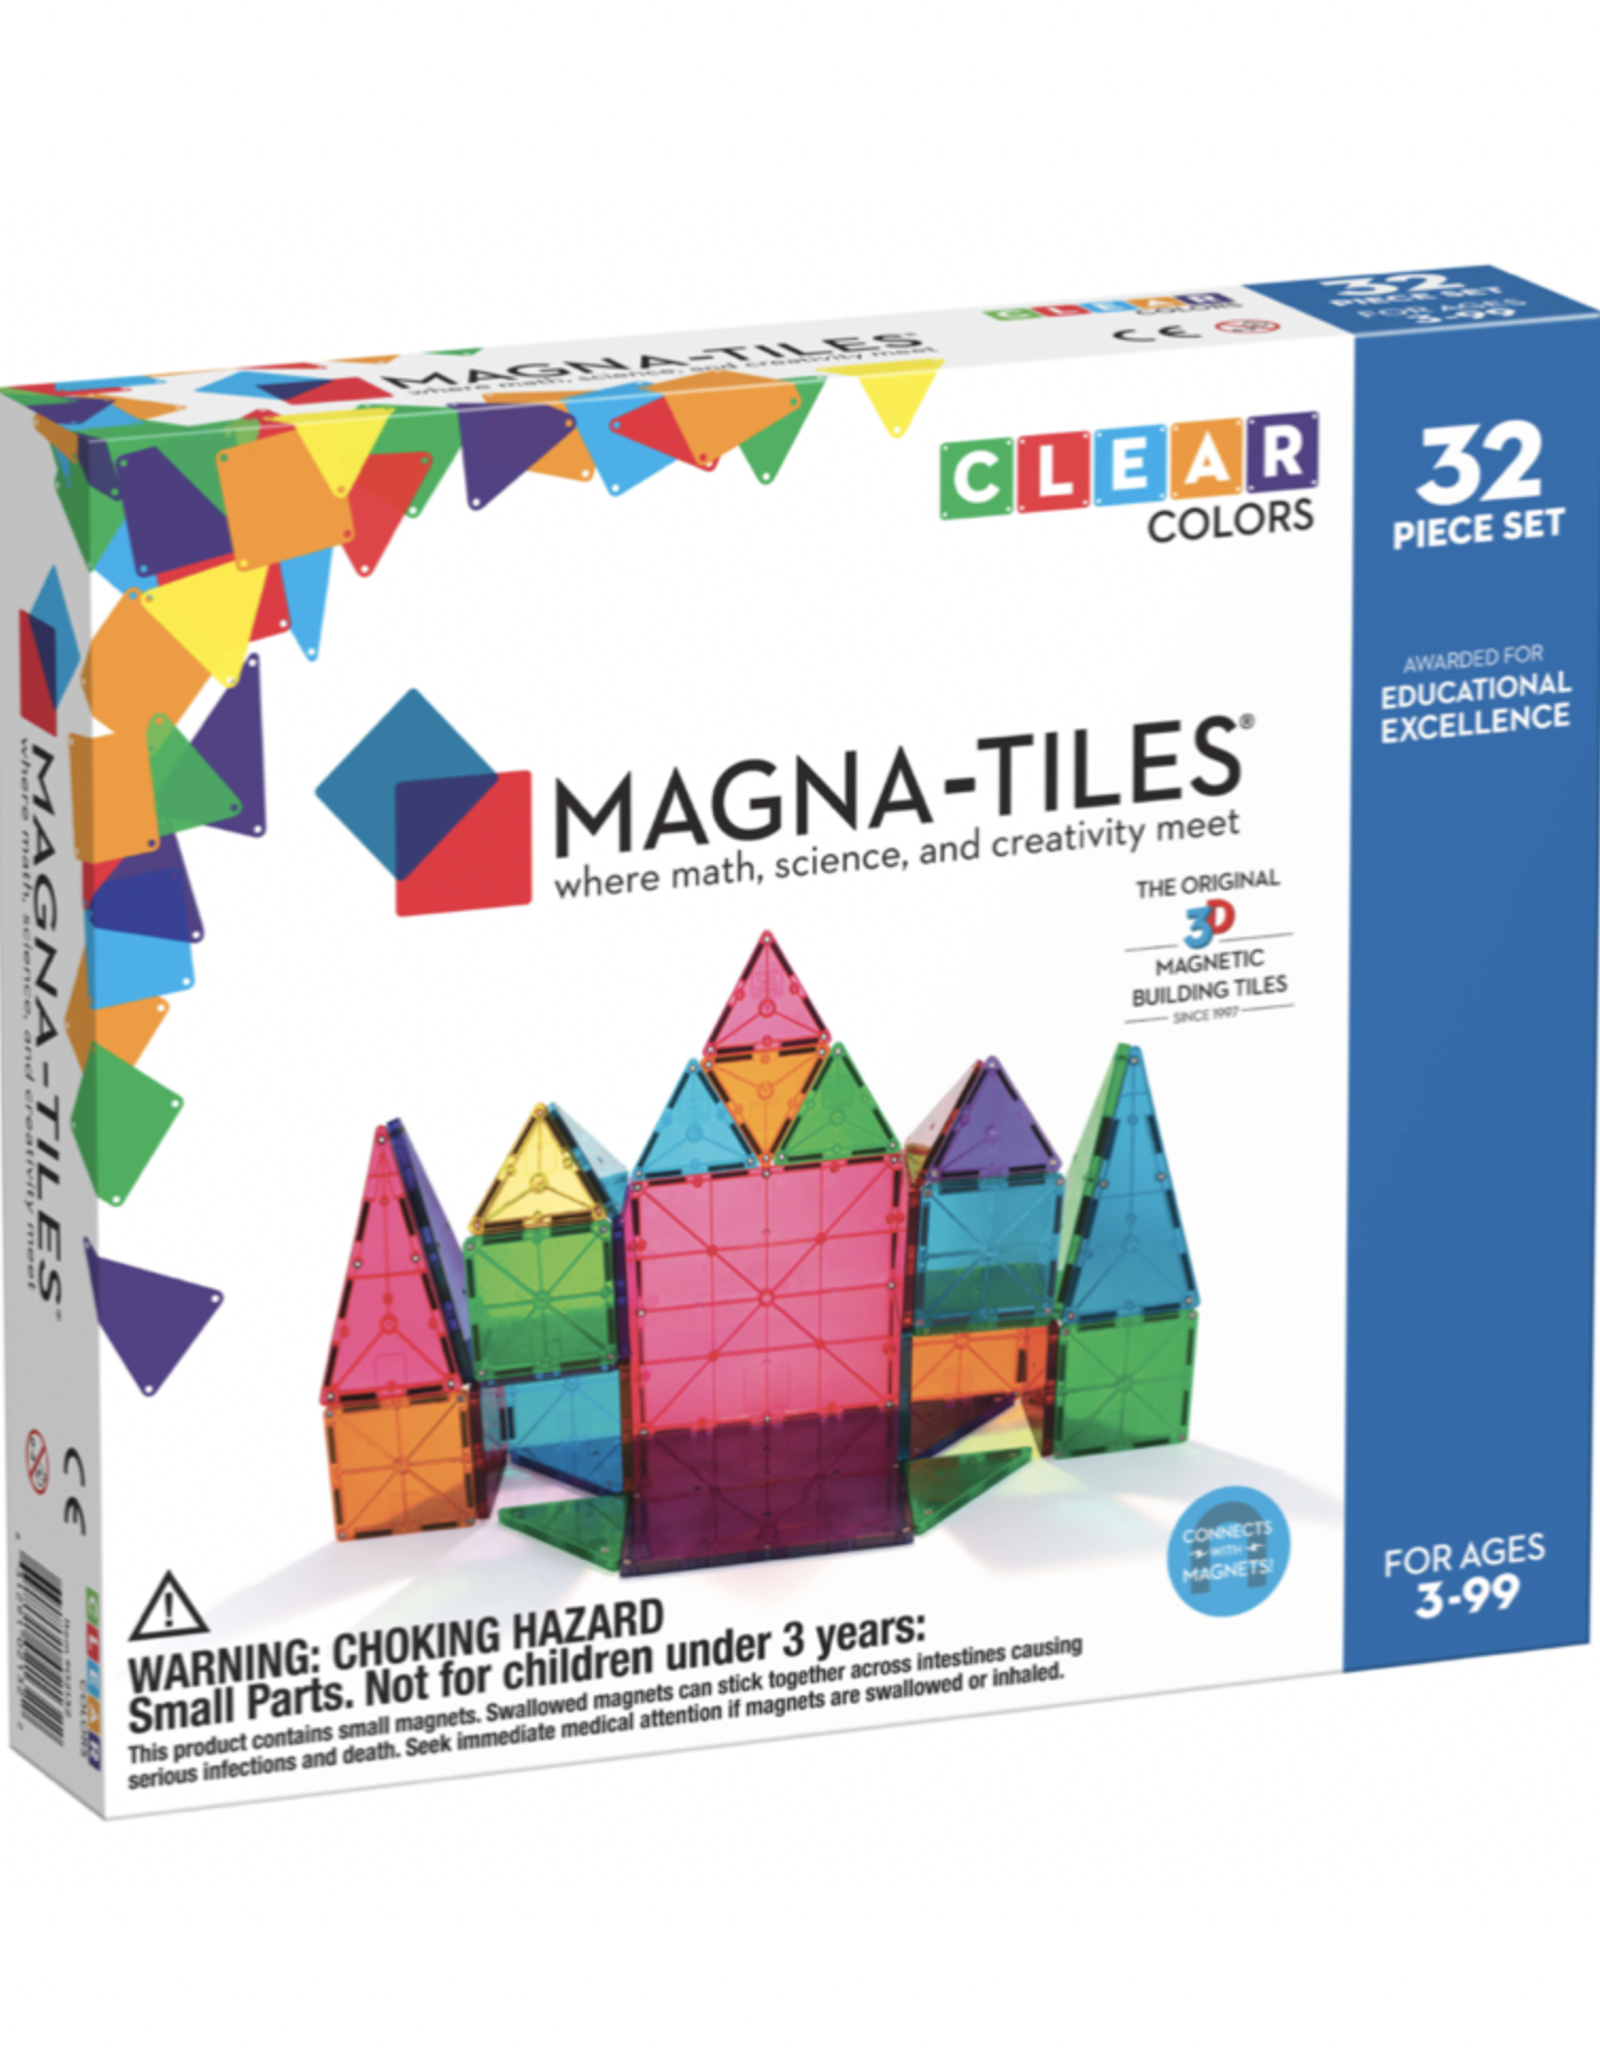 Magnatiles Magna-tiles Clear Colors 32 Piece Set